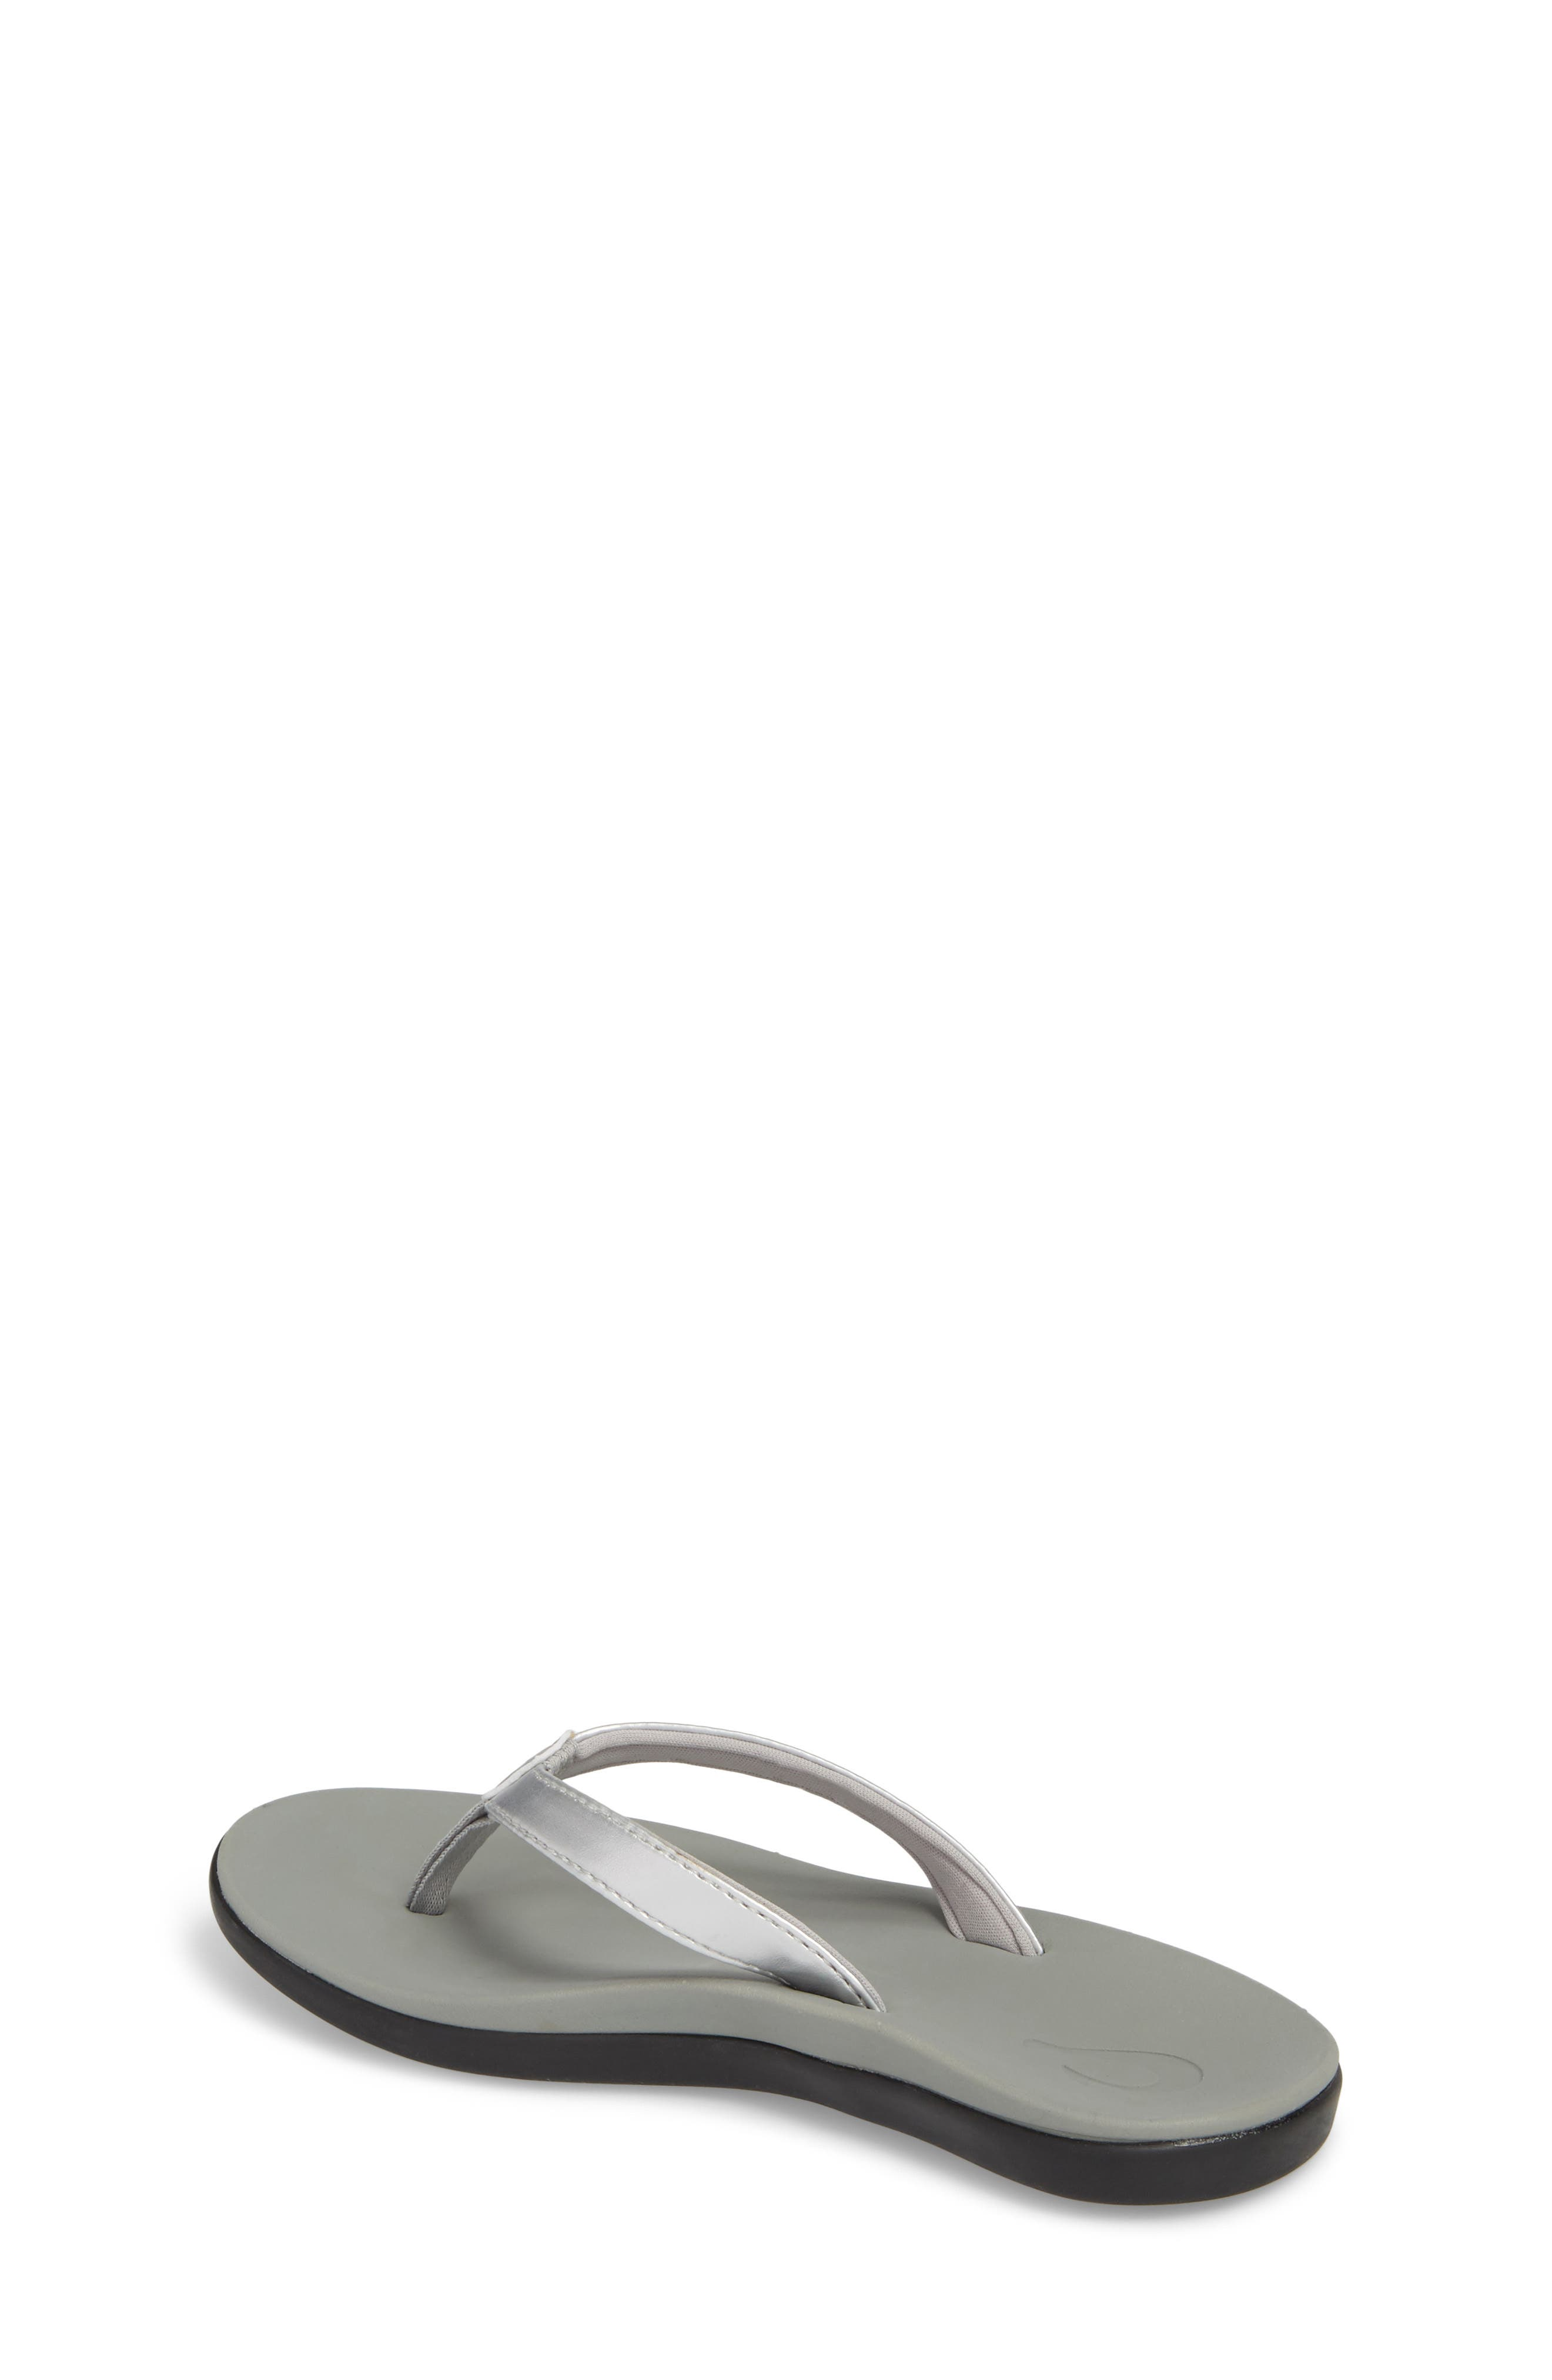 Ho'opio Flip Flop,                             Alternate thumbnail 2, color,                             SILVER STAR/ PALE GREY